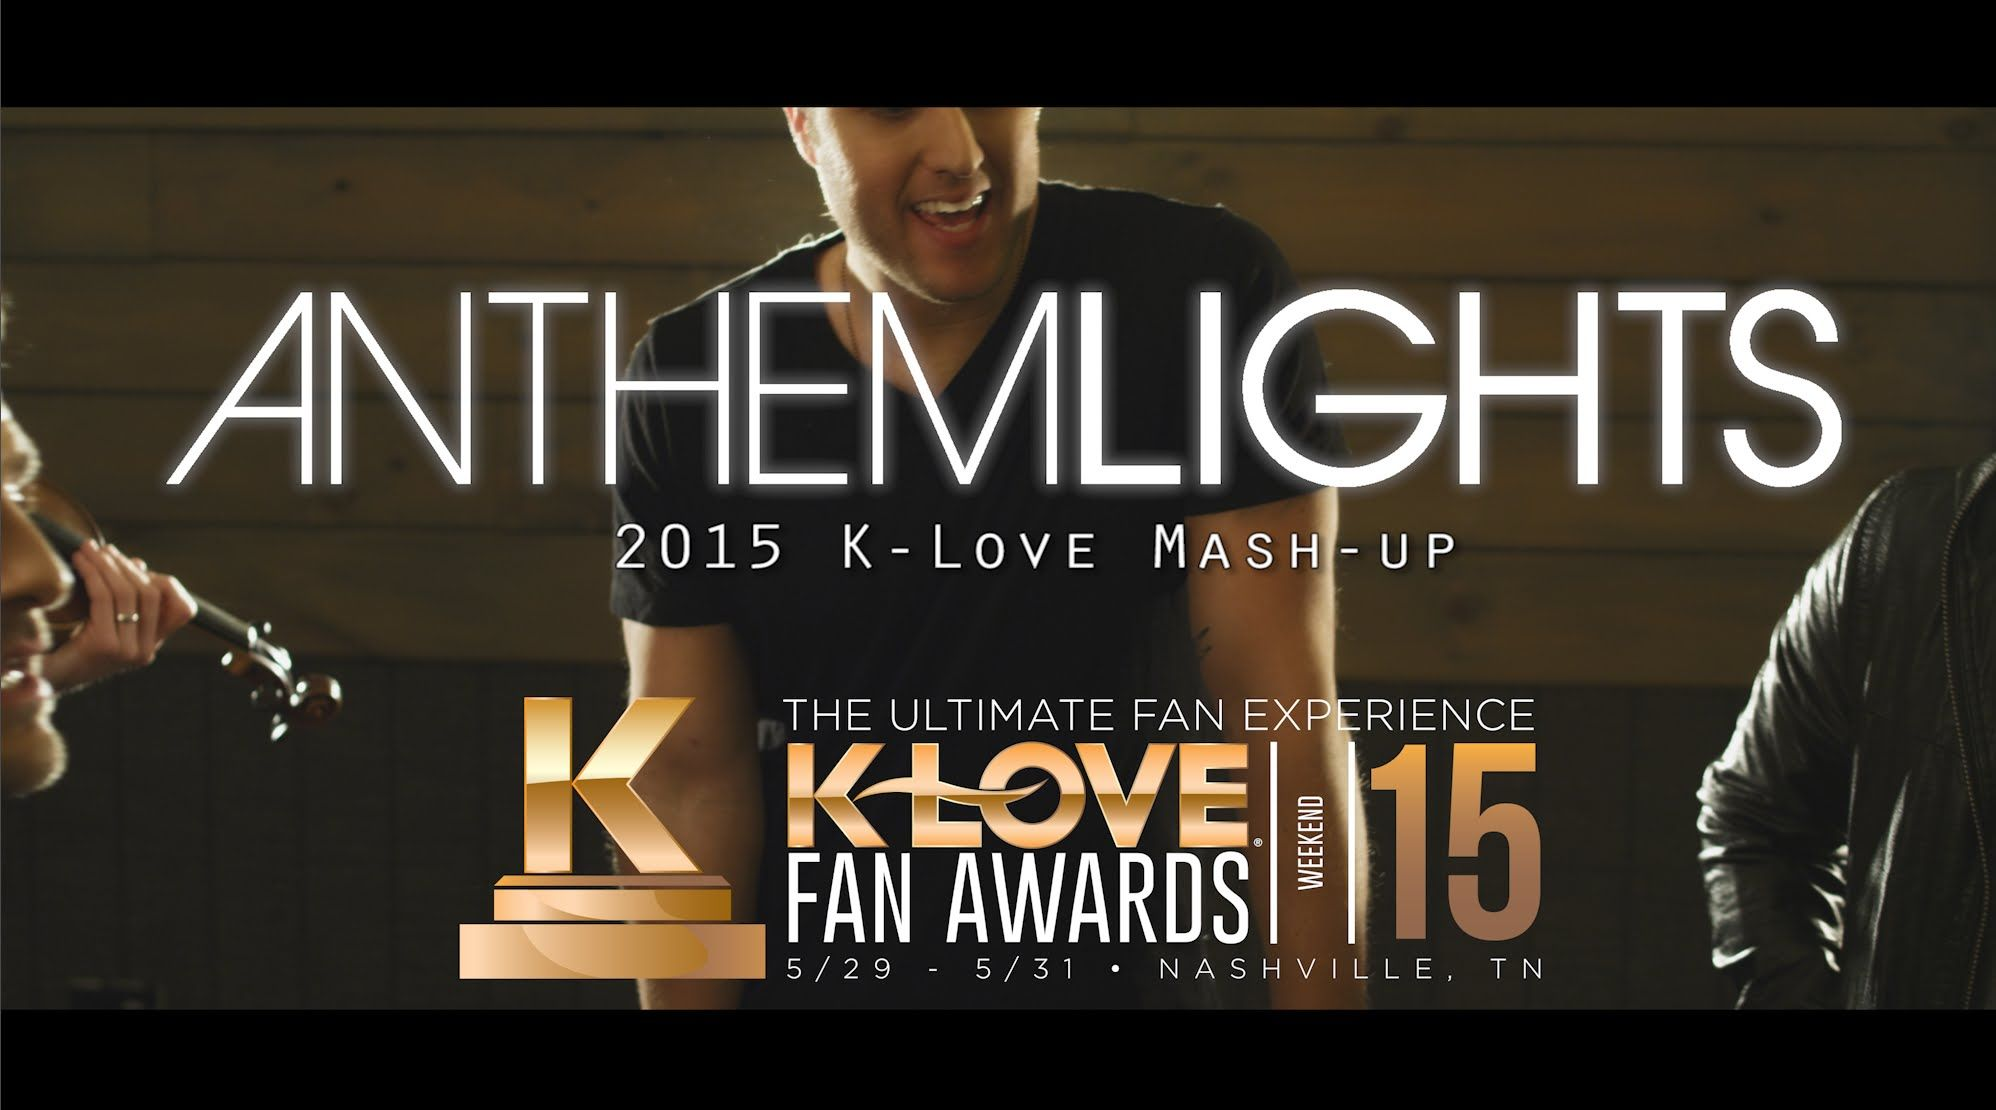 2015 KLOVE Fan Awards Songs of the Year (by Anthem